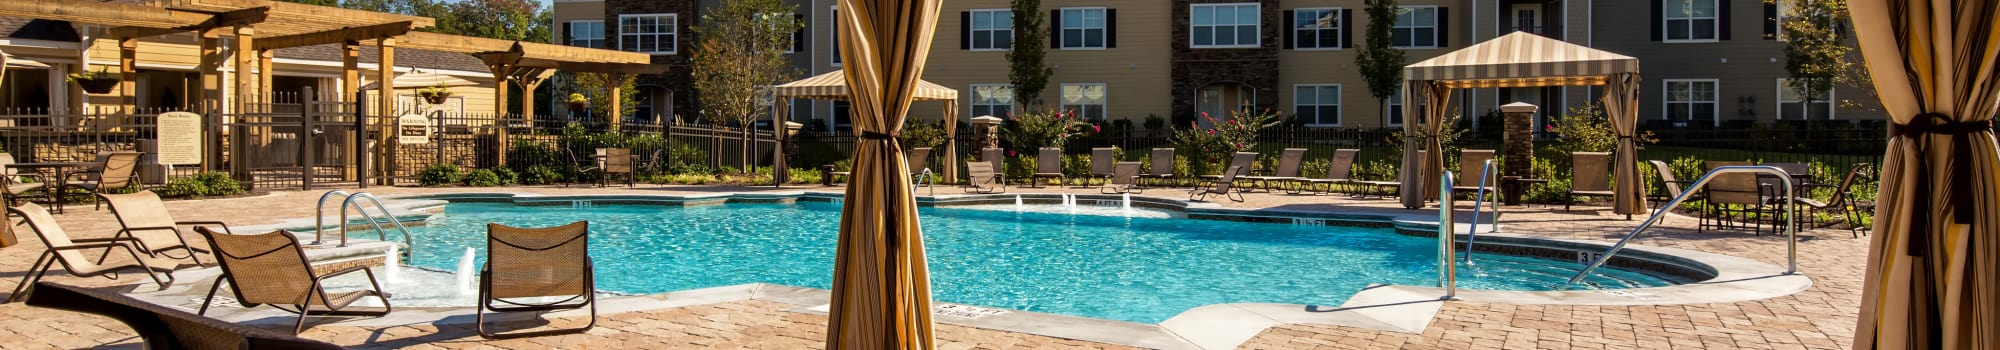 Pet Friendly apartments at Enclave at Highland Ridge in Columbus, Georgia